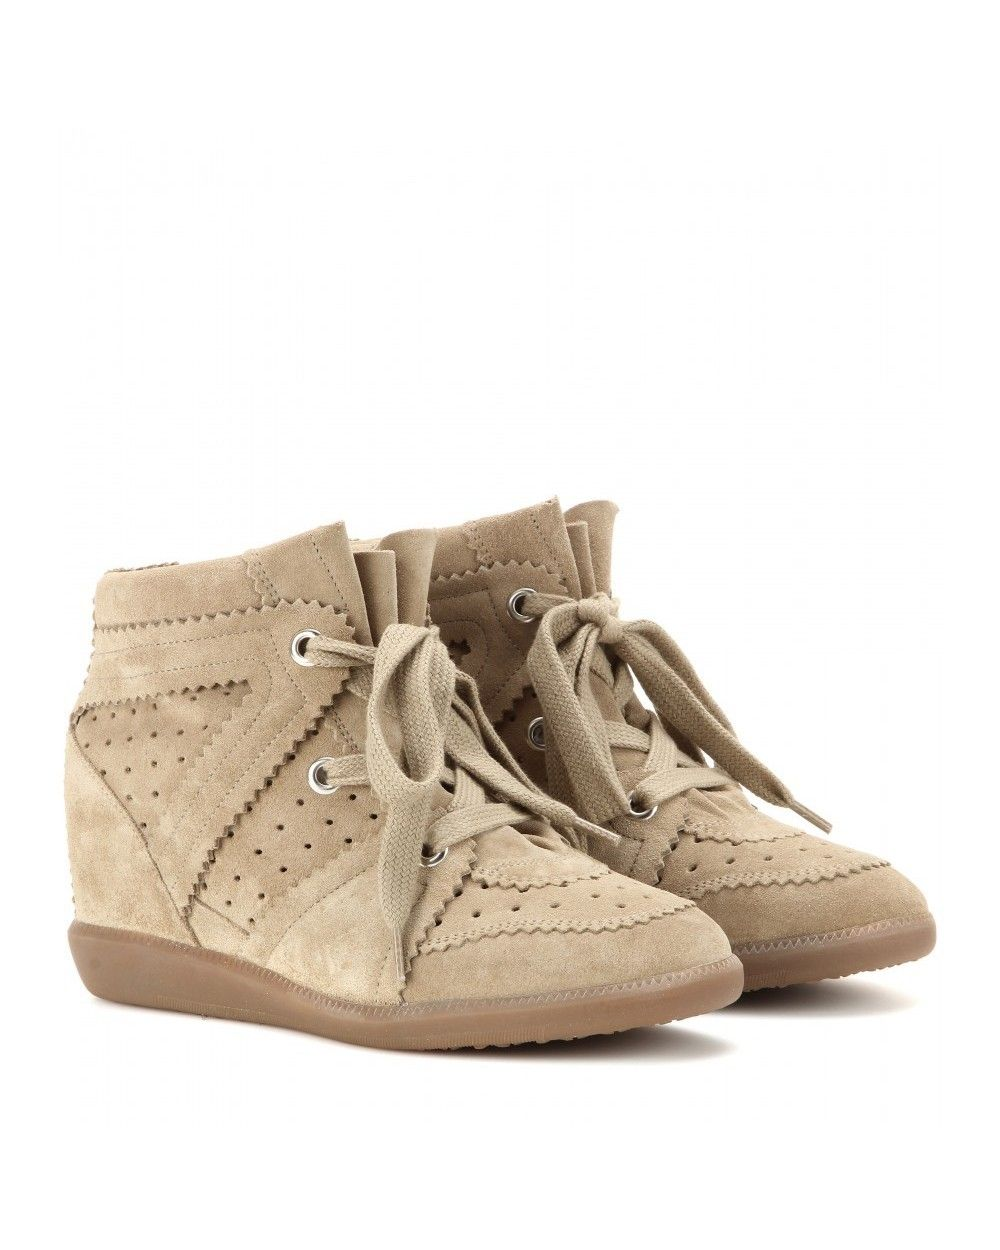 8806e2eeb1 Isabel Marant Bobby Suede Wedge Sneakers Trainers Beige - Isabel Marant # isabelmarant #shoes #sneakers #women #womenfashion #newyear #fashion #gifts